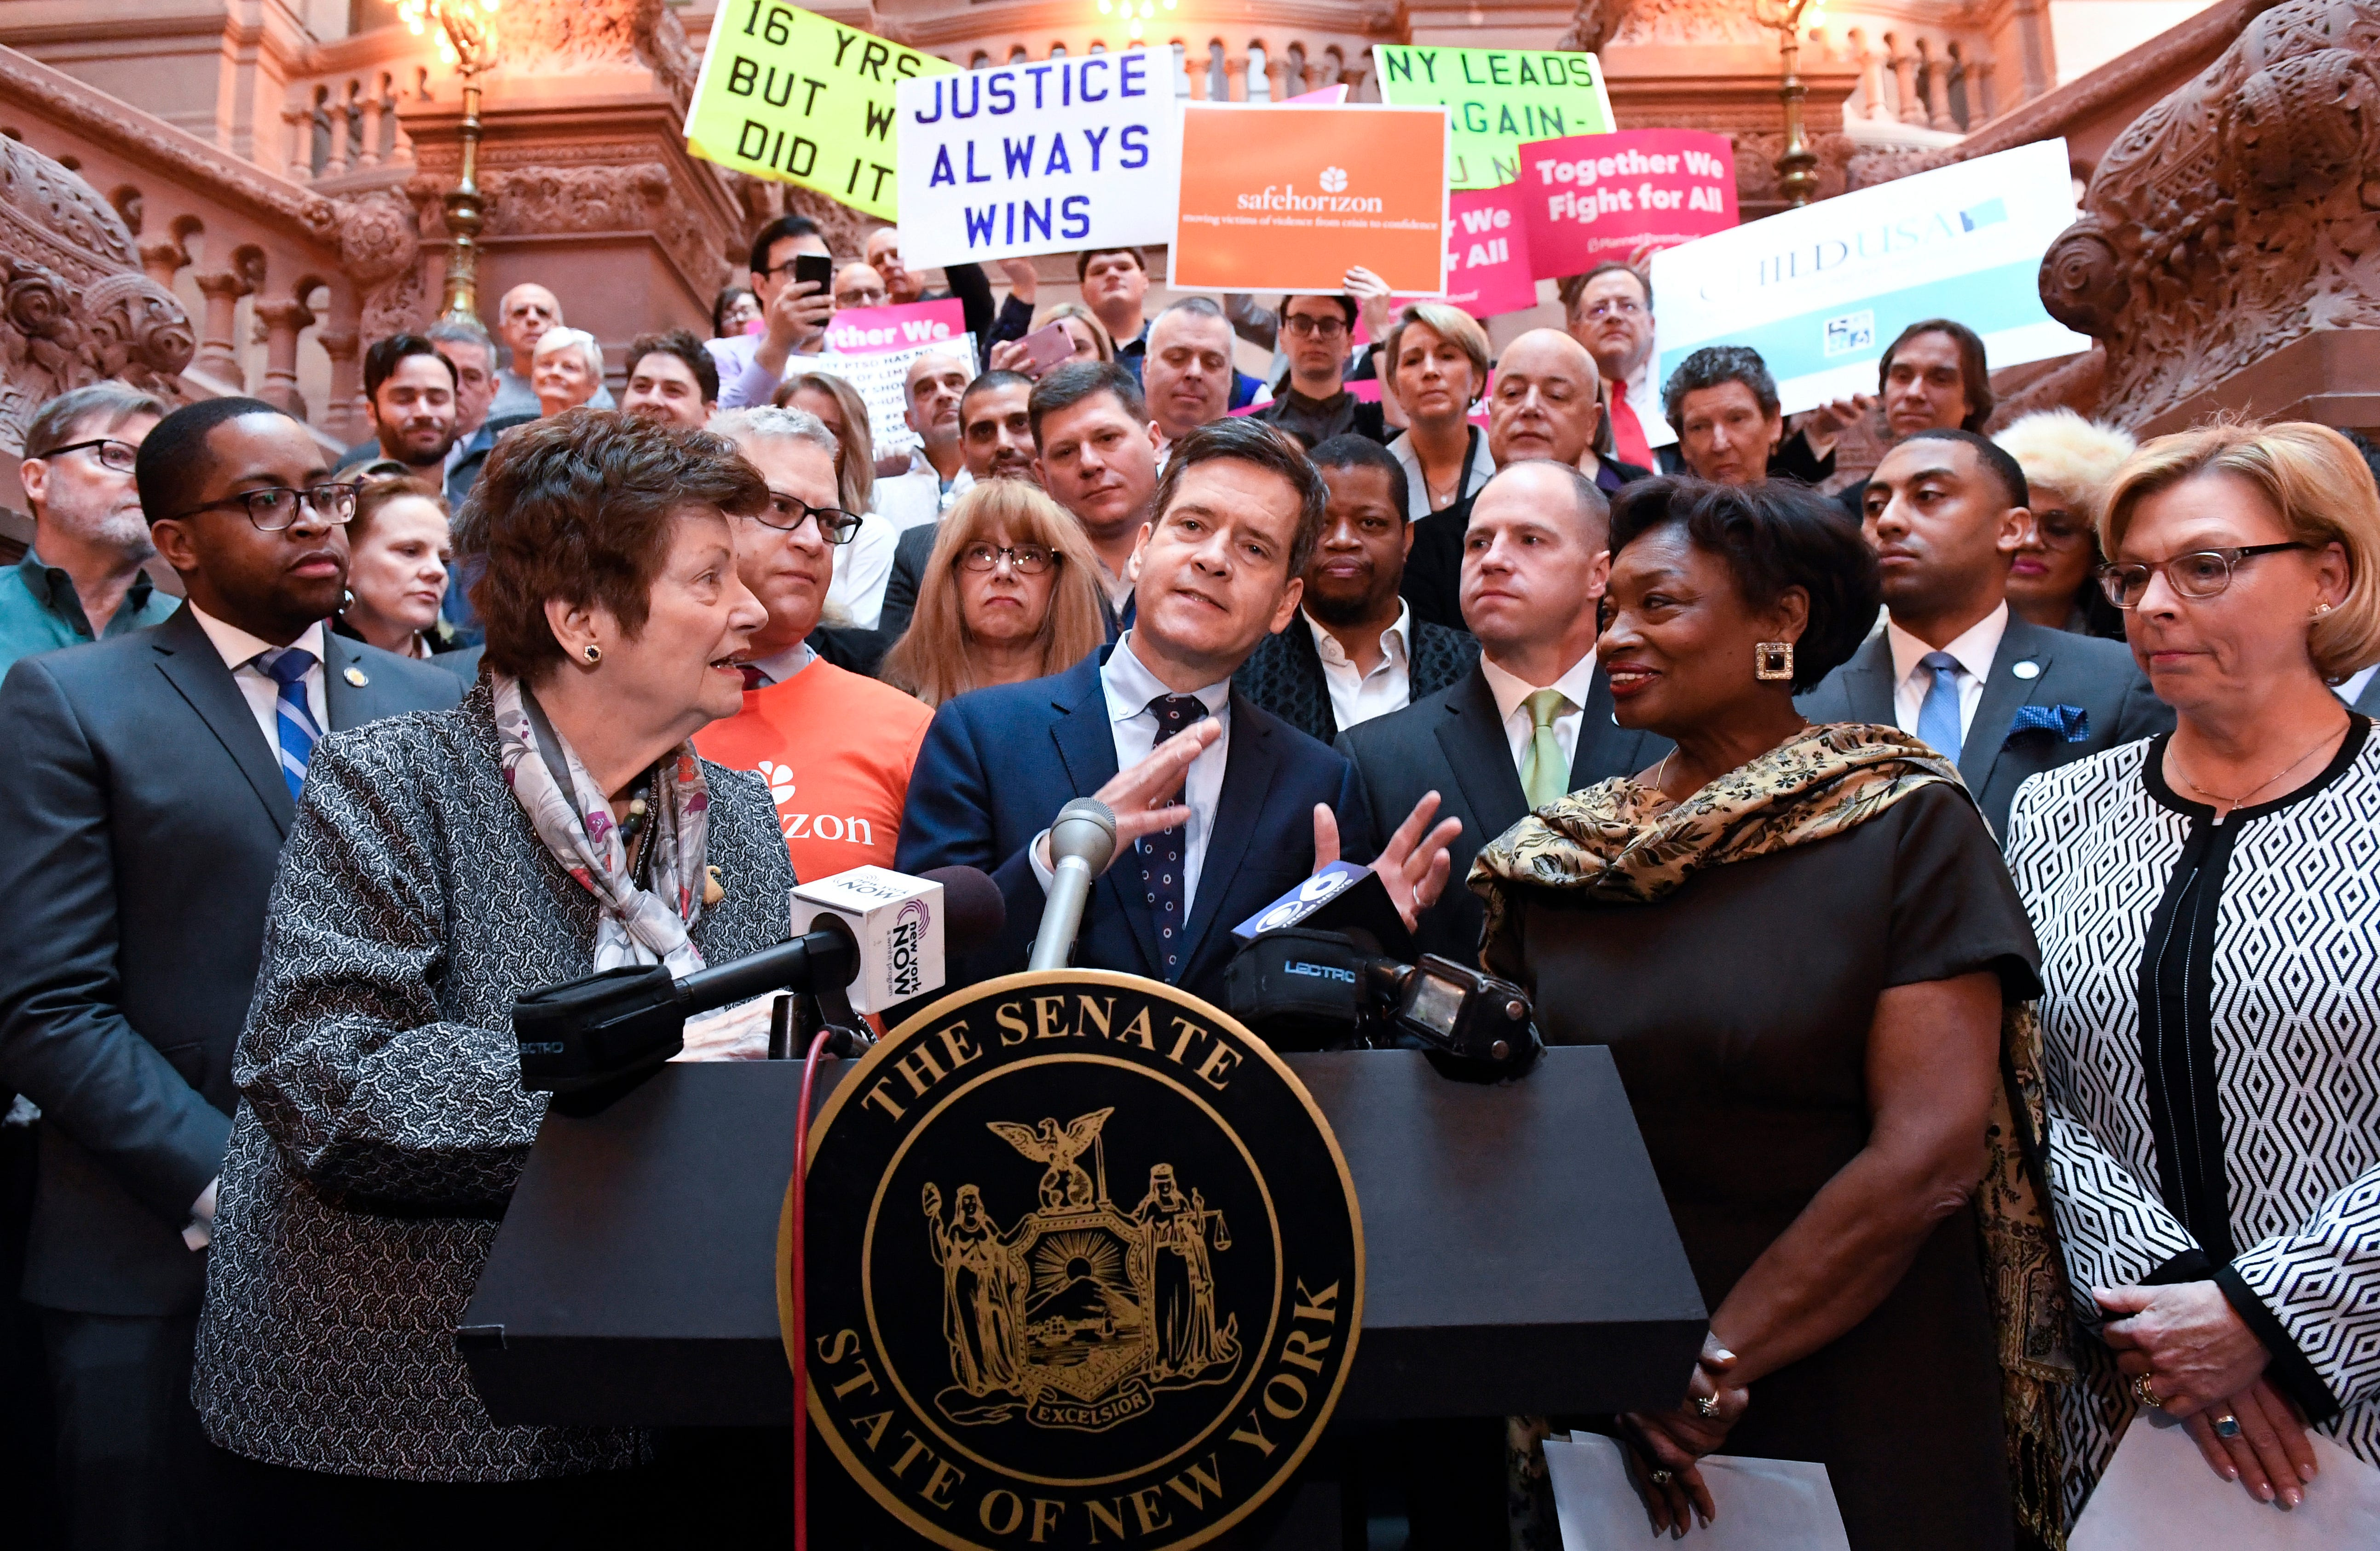 New York Sen. Brad Hoylman, D-Manhattan, center, flanked by former Assemblywoman Margaret Markey, left, and Senate Majority Leader Andrea Stewart-Cousins, D-Yonkers, right, stands with survivors and advocates speaking in favor of passing legislation authorizing the Child Victims Act during a news conference at the state Capitol in Albany, New York, on Monday, Jan. 28, 2019.